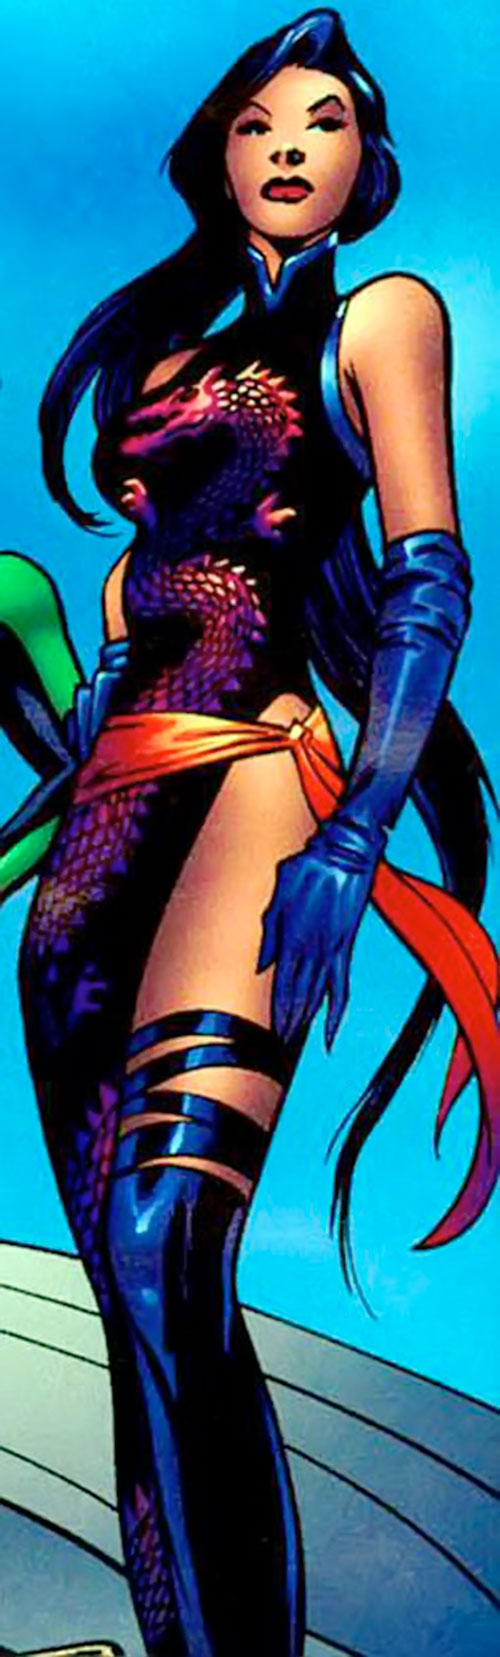 Psylocke of the X-Men and Exiles (Marvel Comics) with a dragon dress